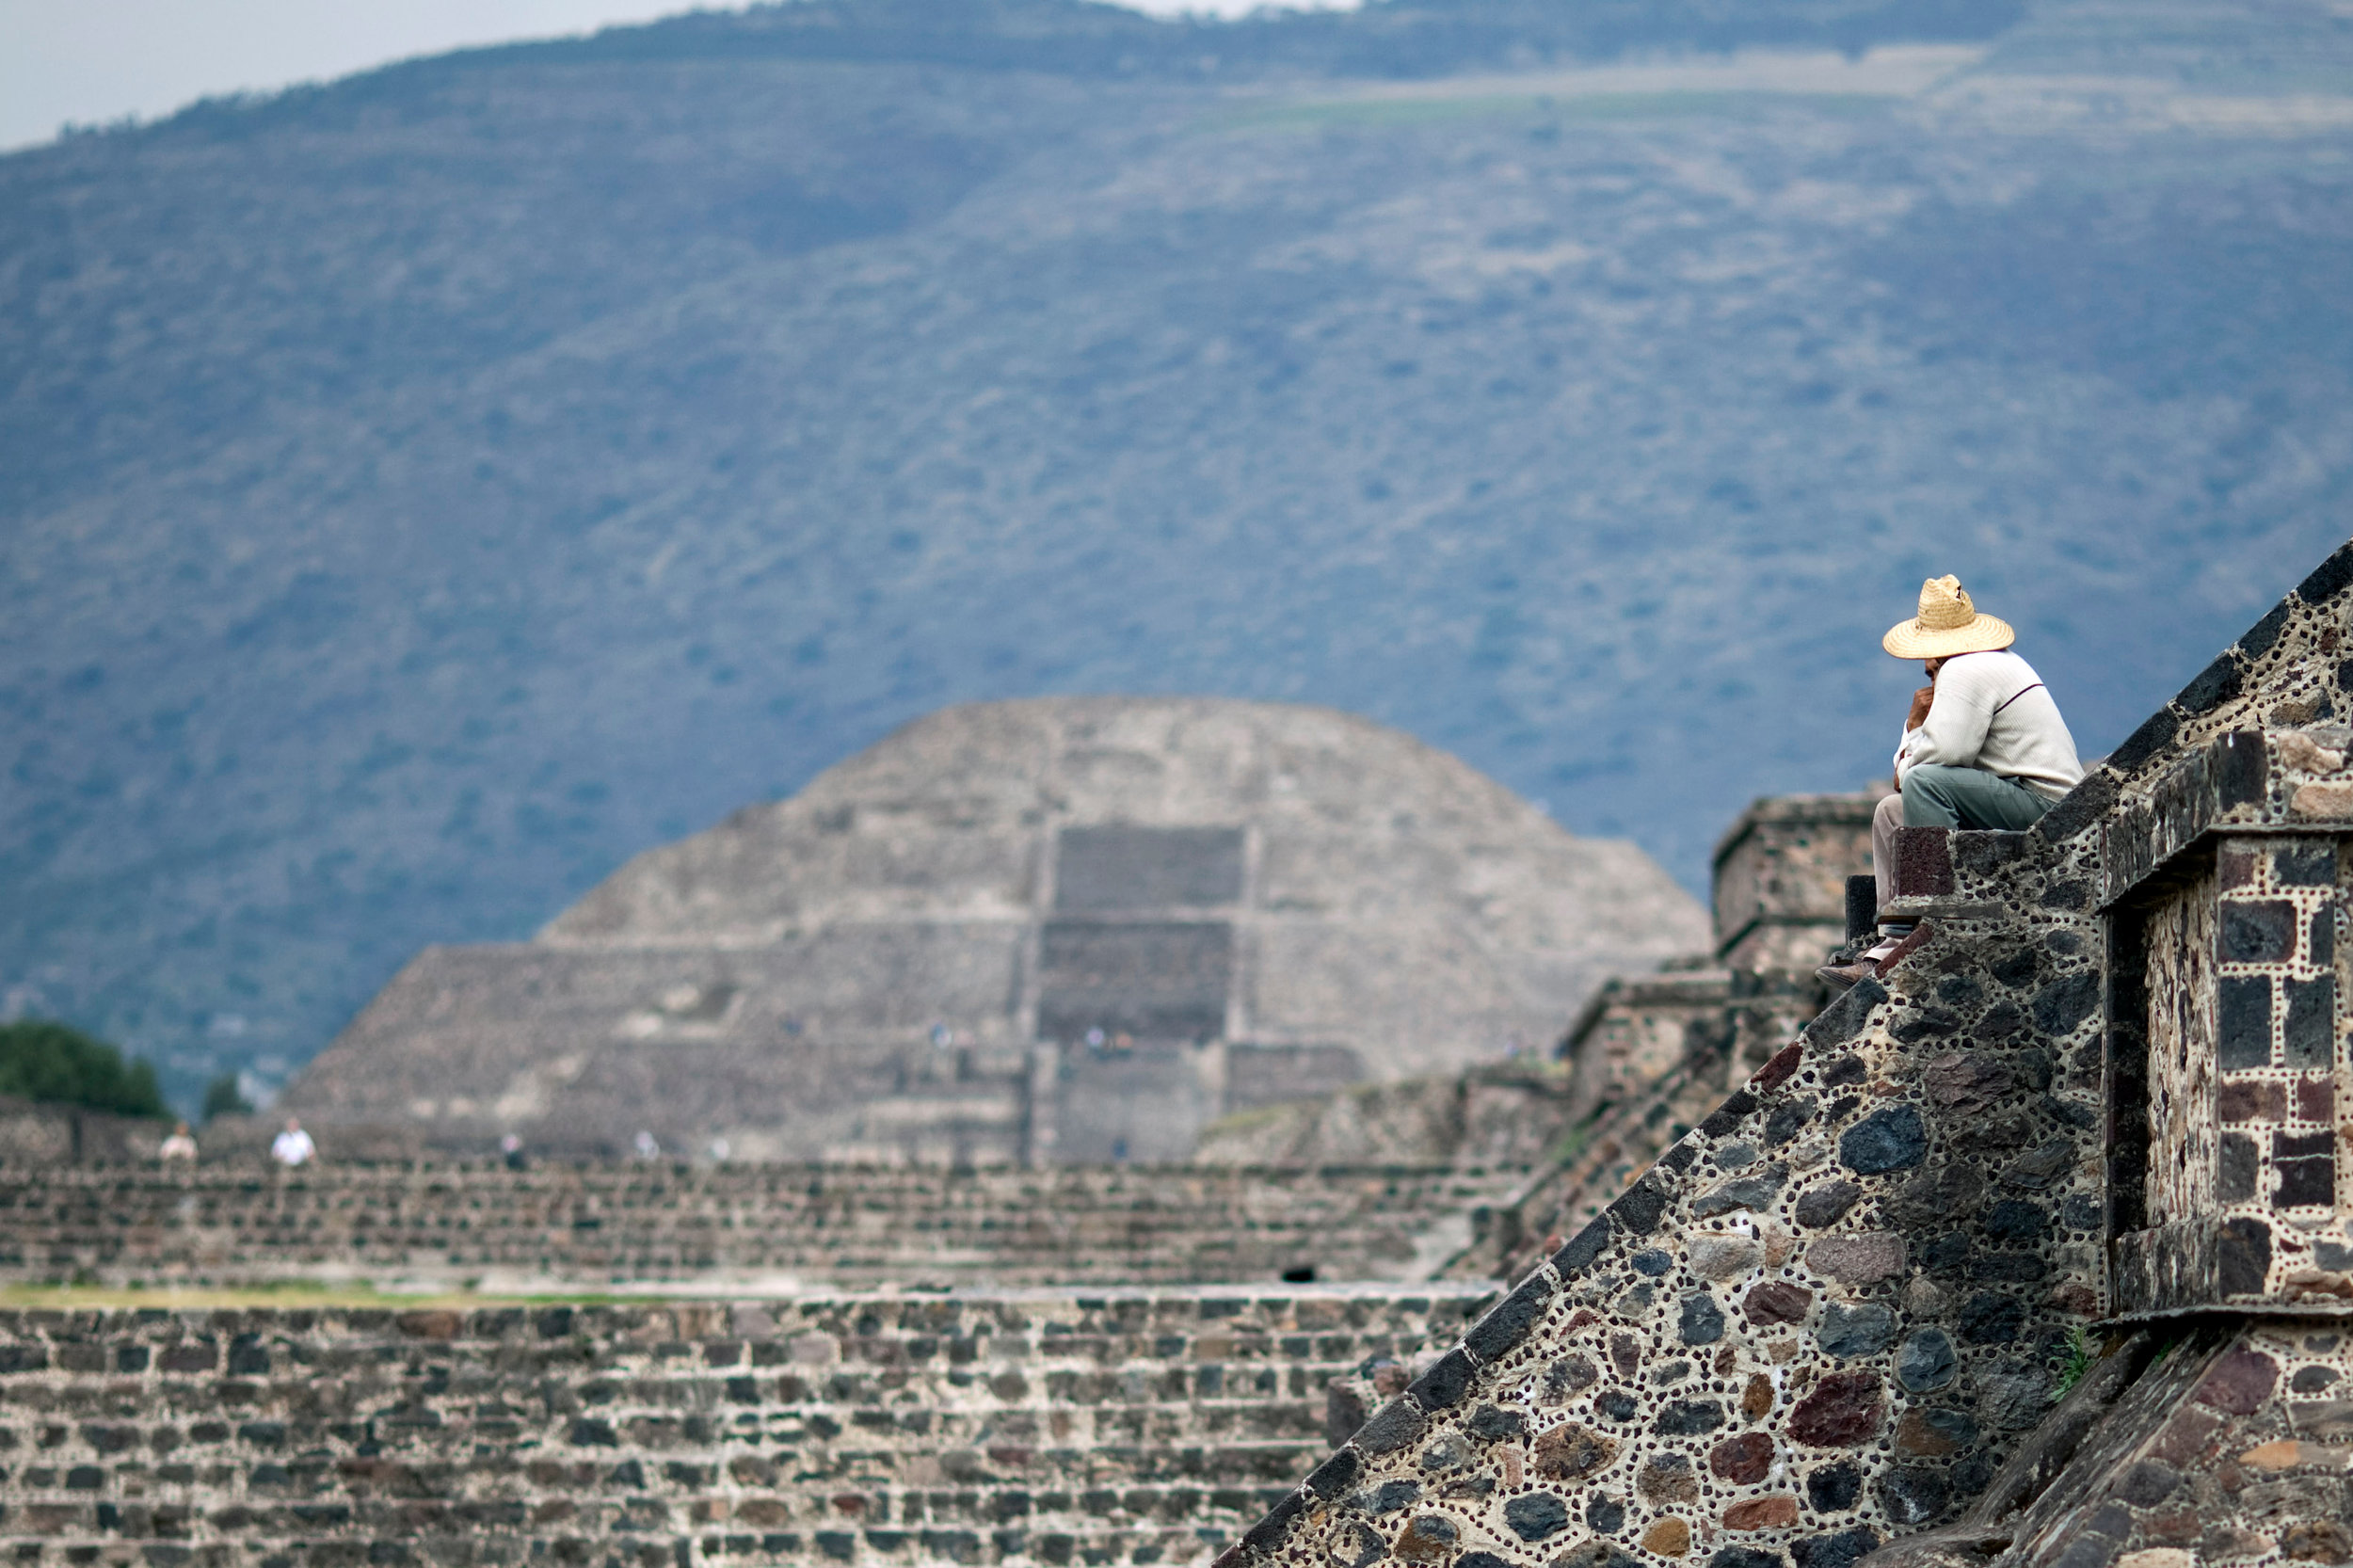 A somber sombrero in Mexico. We have visited twice. The Mexicans I have gotten to know spread joy and are a pleasure to be around. Why build walls when you can build bridges.